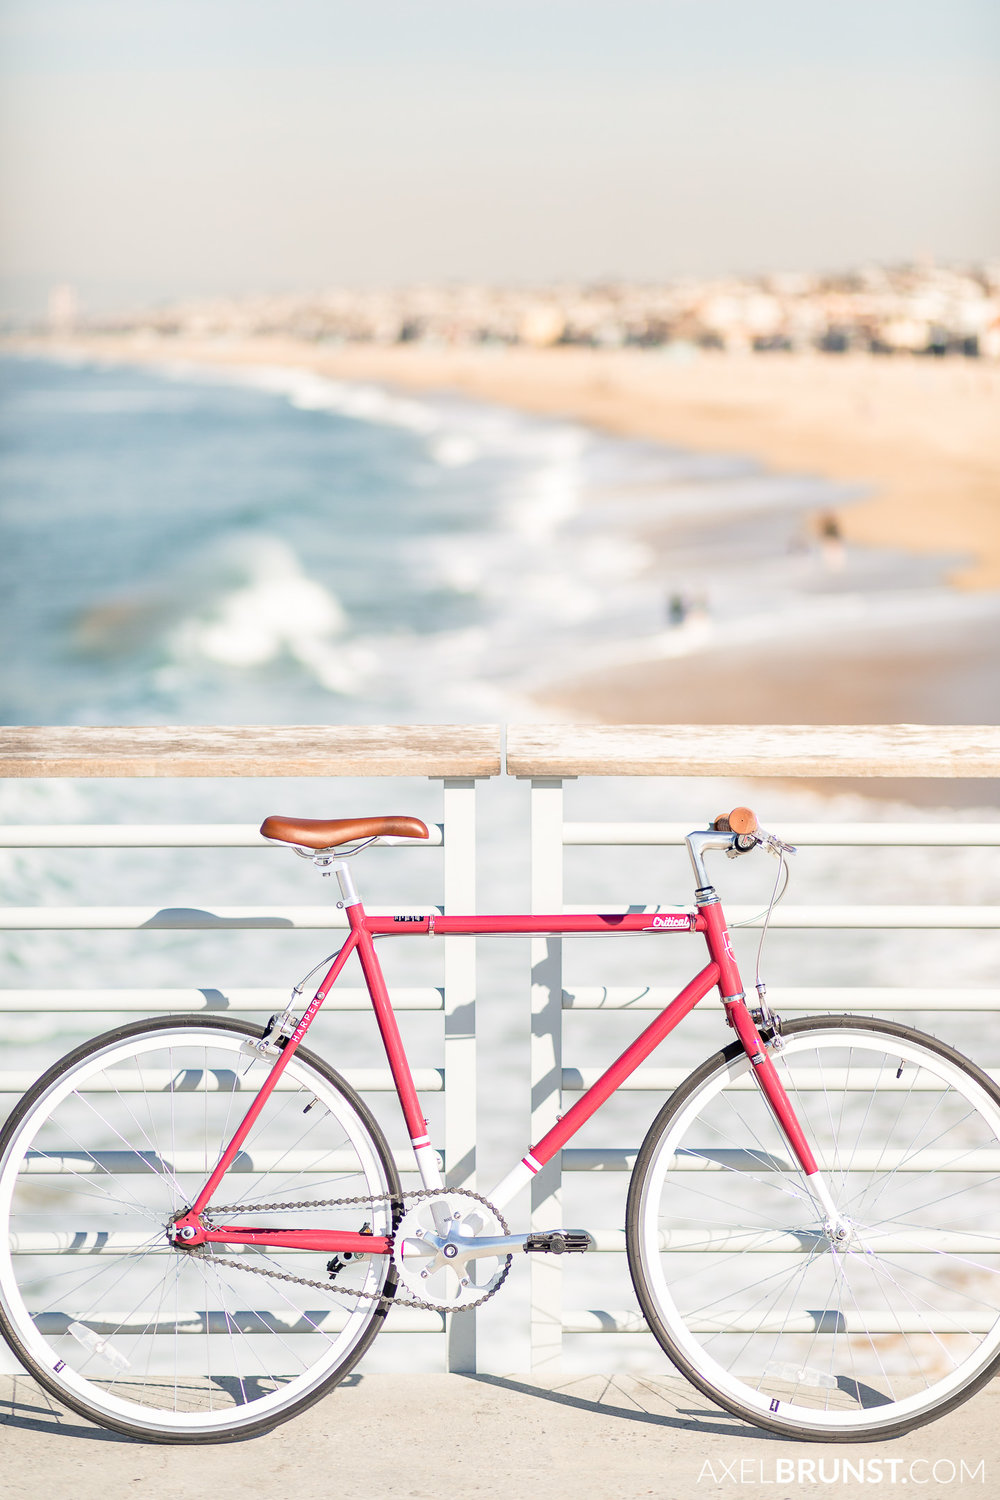 LA-LongBeach-Bike-ride-7.jpg